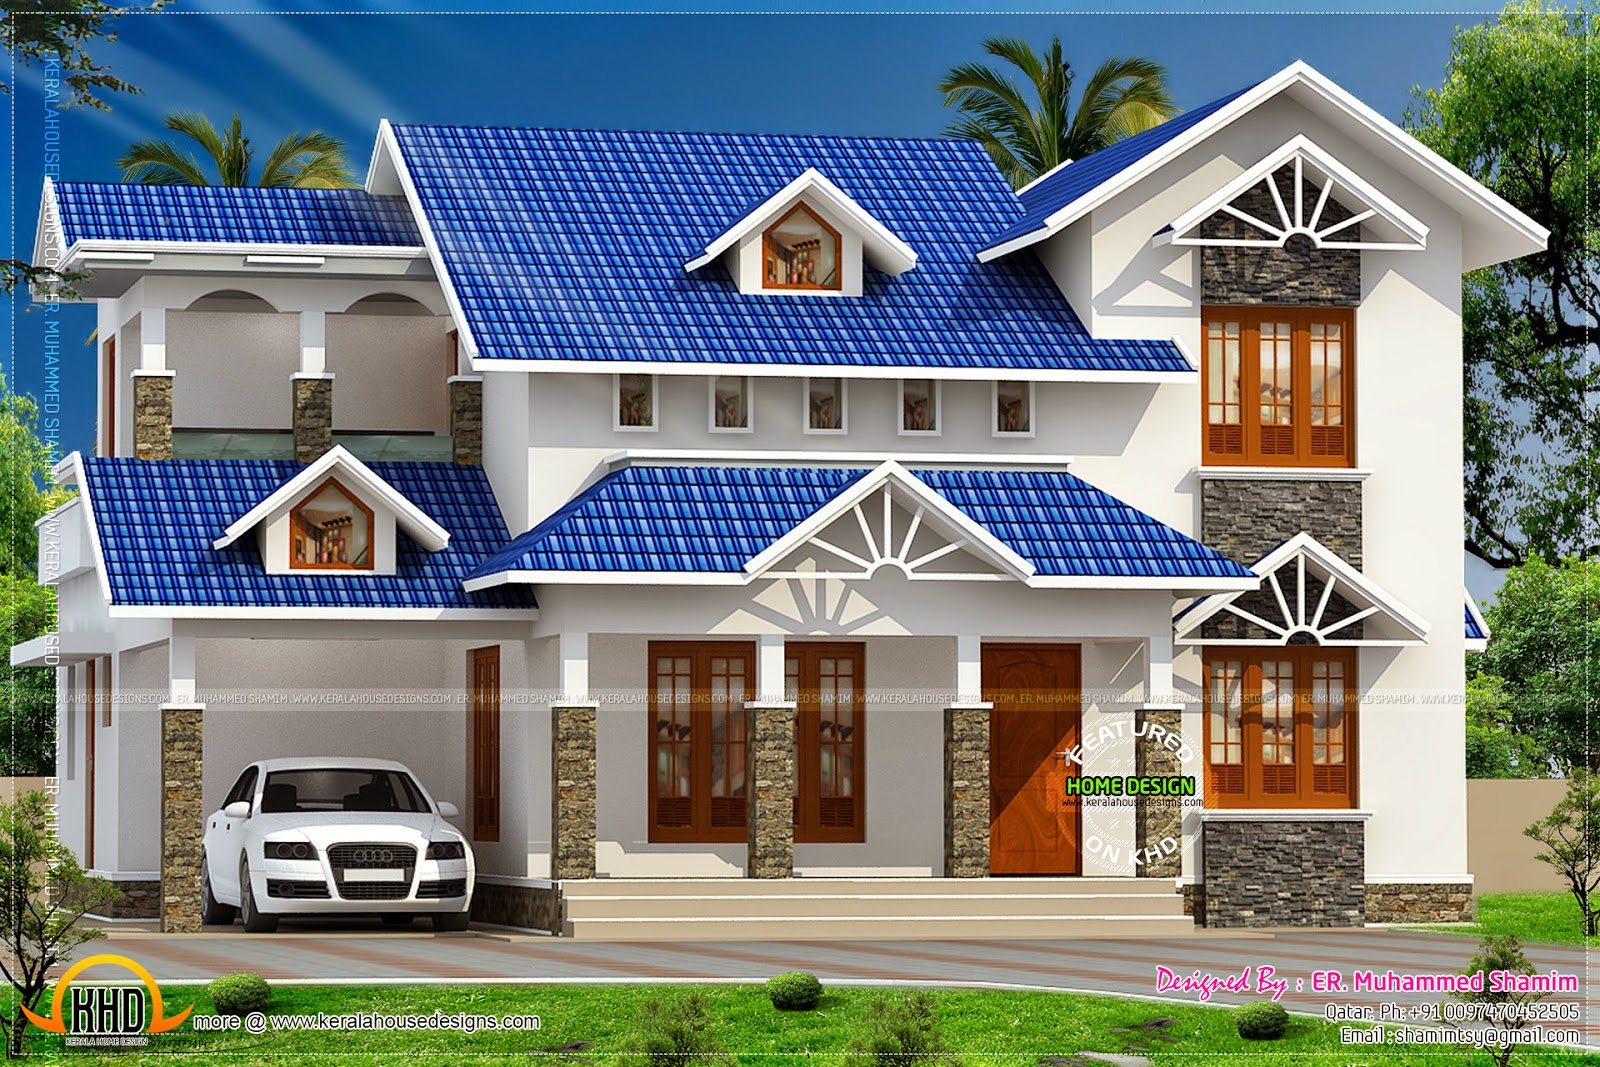 Nice sloped roof kerala home design kerala home design for Kerala house plans and designs